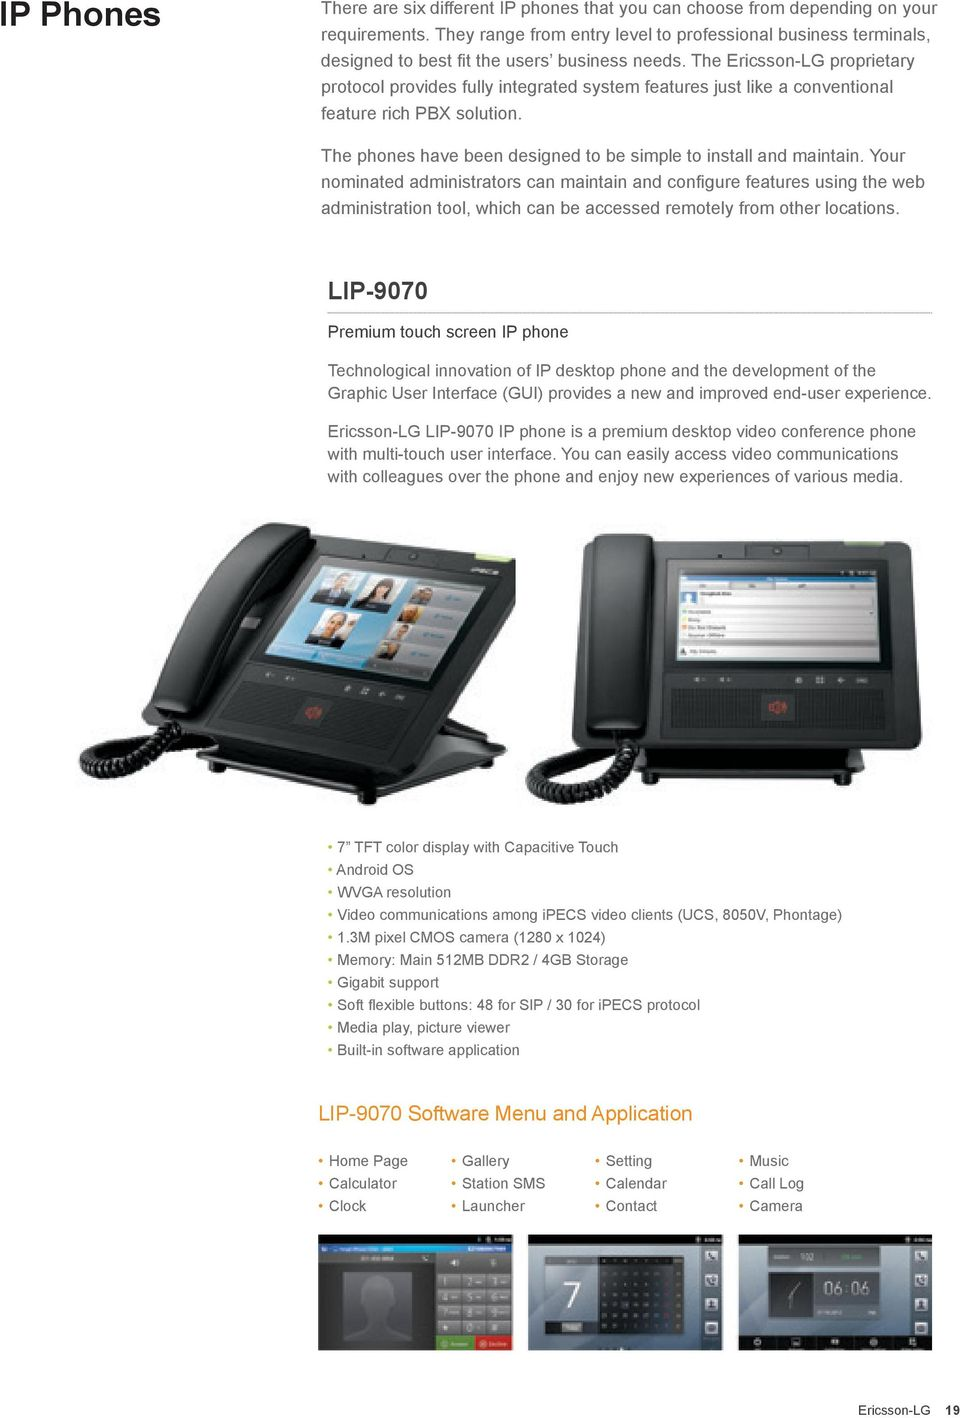 The Ericsson-LG proprietary protocol provides fully integrated system features just like a conventional feature rich PBX solution. The phones have been designed to be simple to install and maintain.